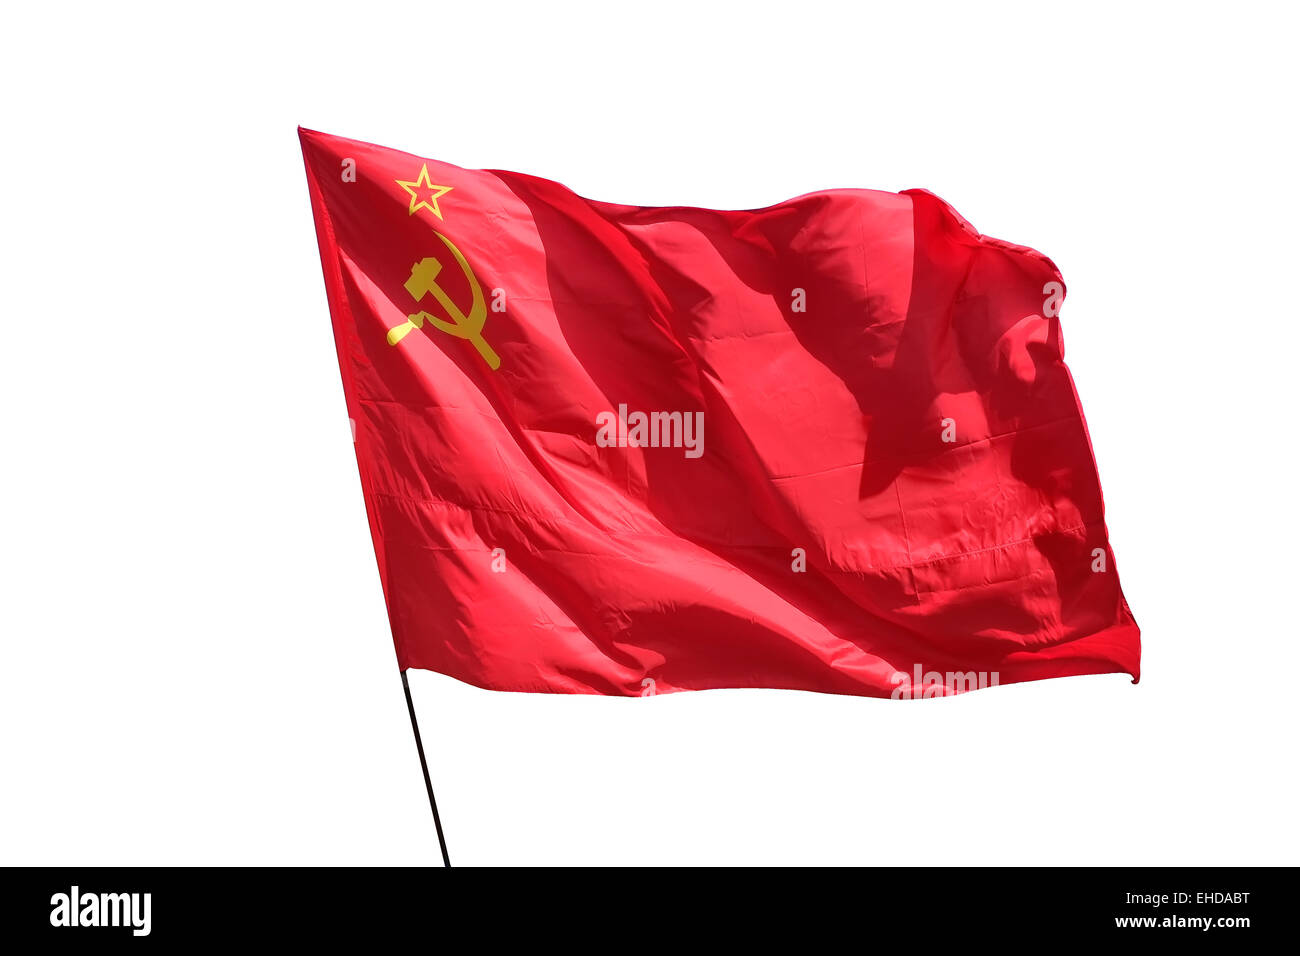 The flag of the Soviet Union (USSR) waving in the wind. Stock Photo